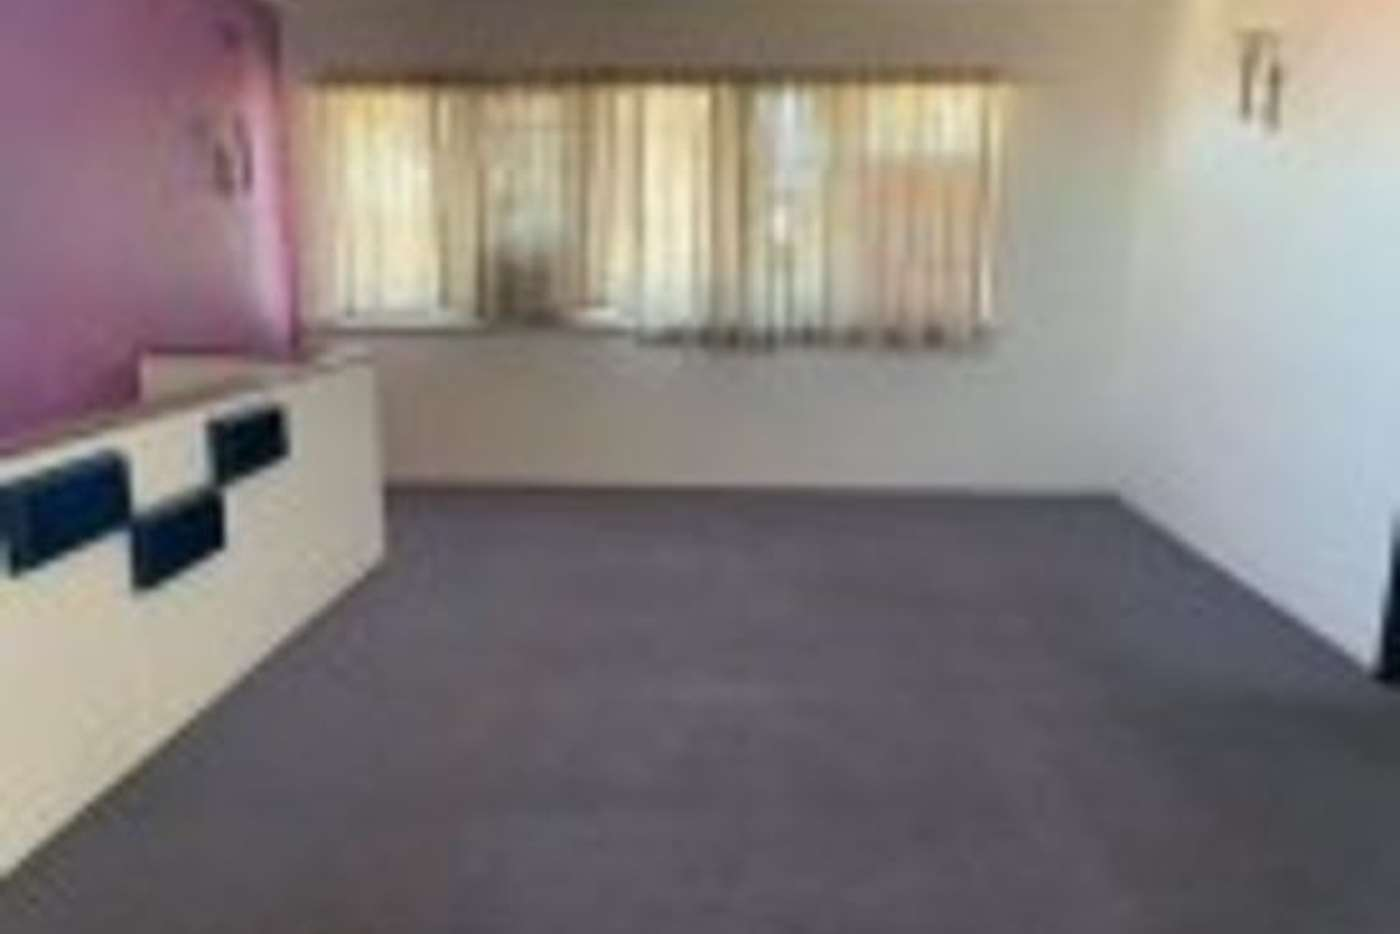 Main view of Homely unit listing, 27 Merrylands road, Merrylands NSW 2160